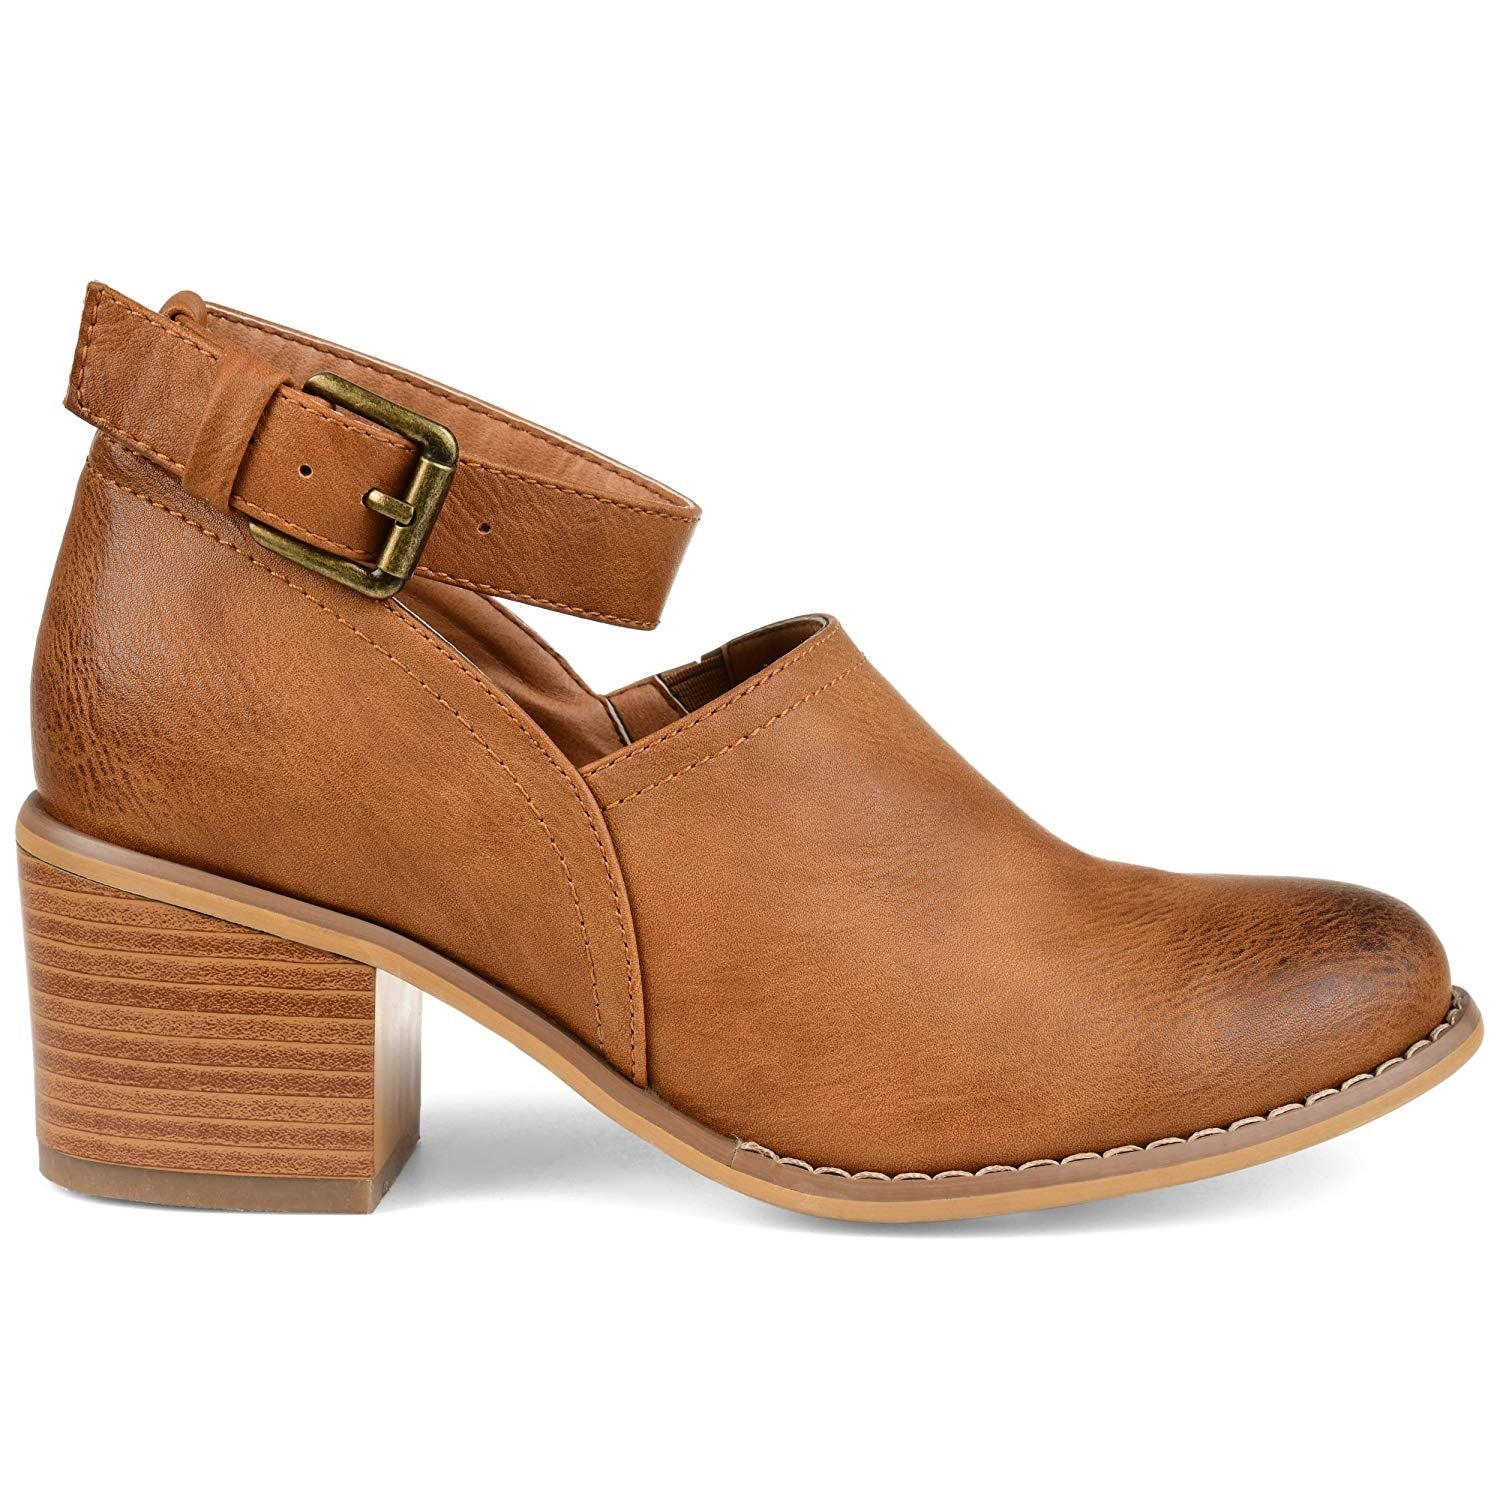 c2cb268ba3a4 Shop Brinley Co Womens Faux Leather Wood Stacked Heel Ankle Strap Clogs -  11 - Free Shipping On Orders Over  45 - Overstock - 27185119